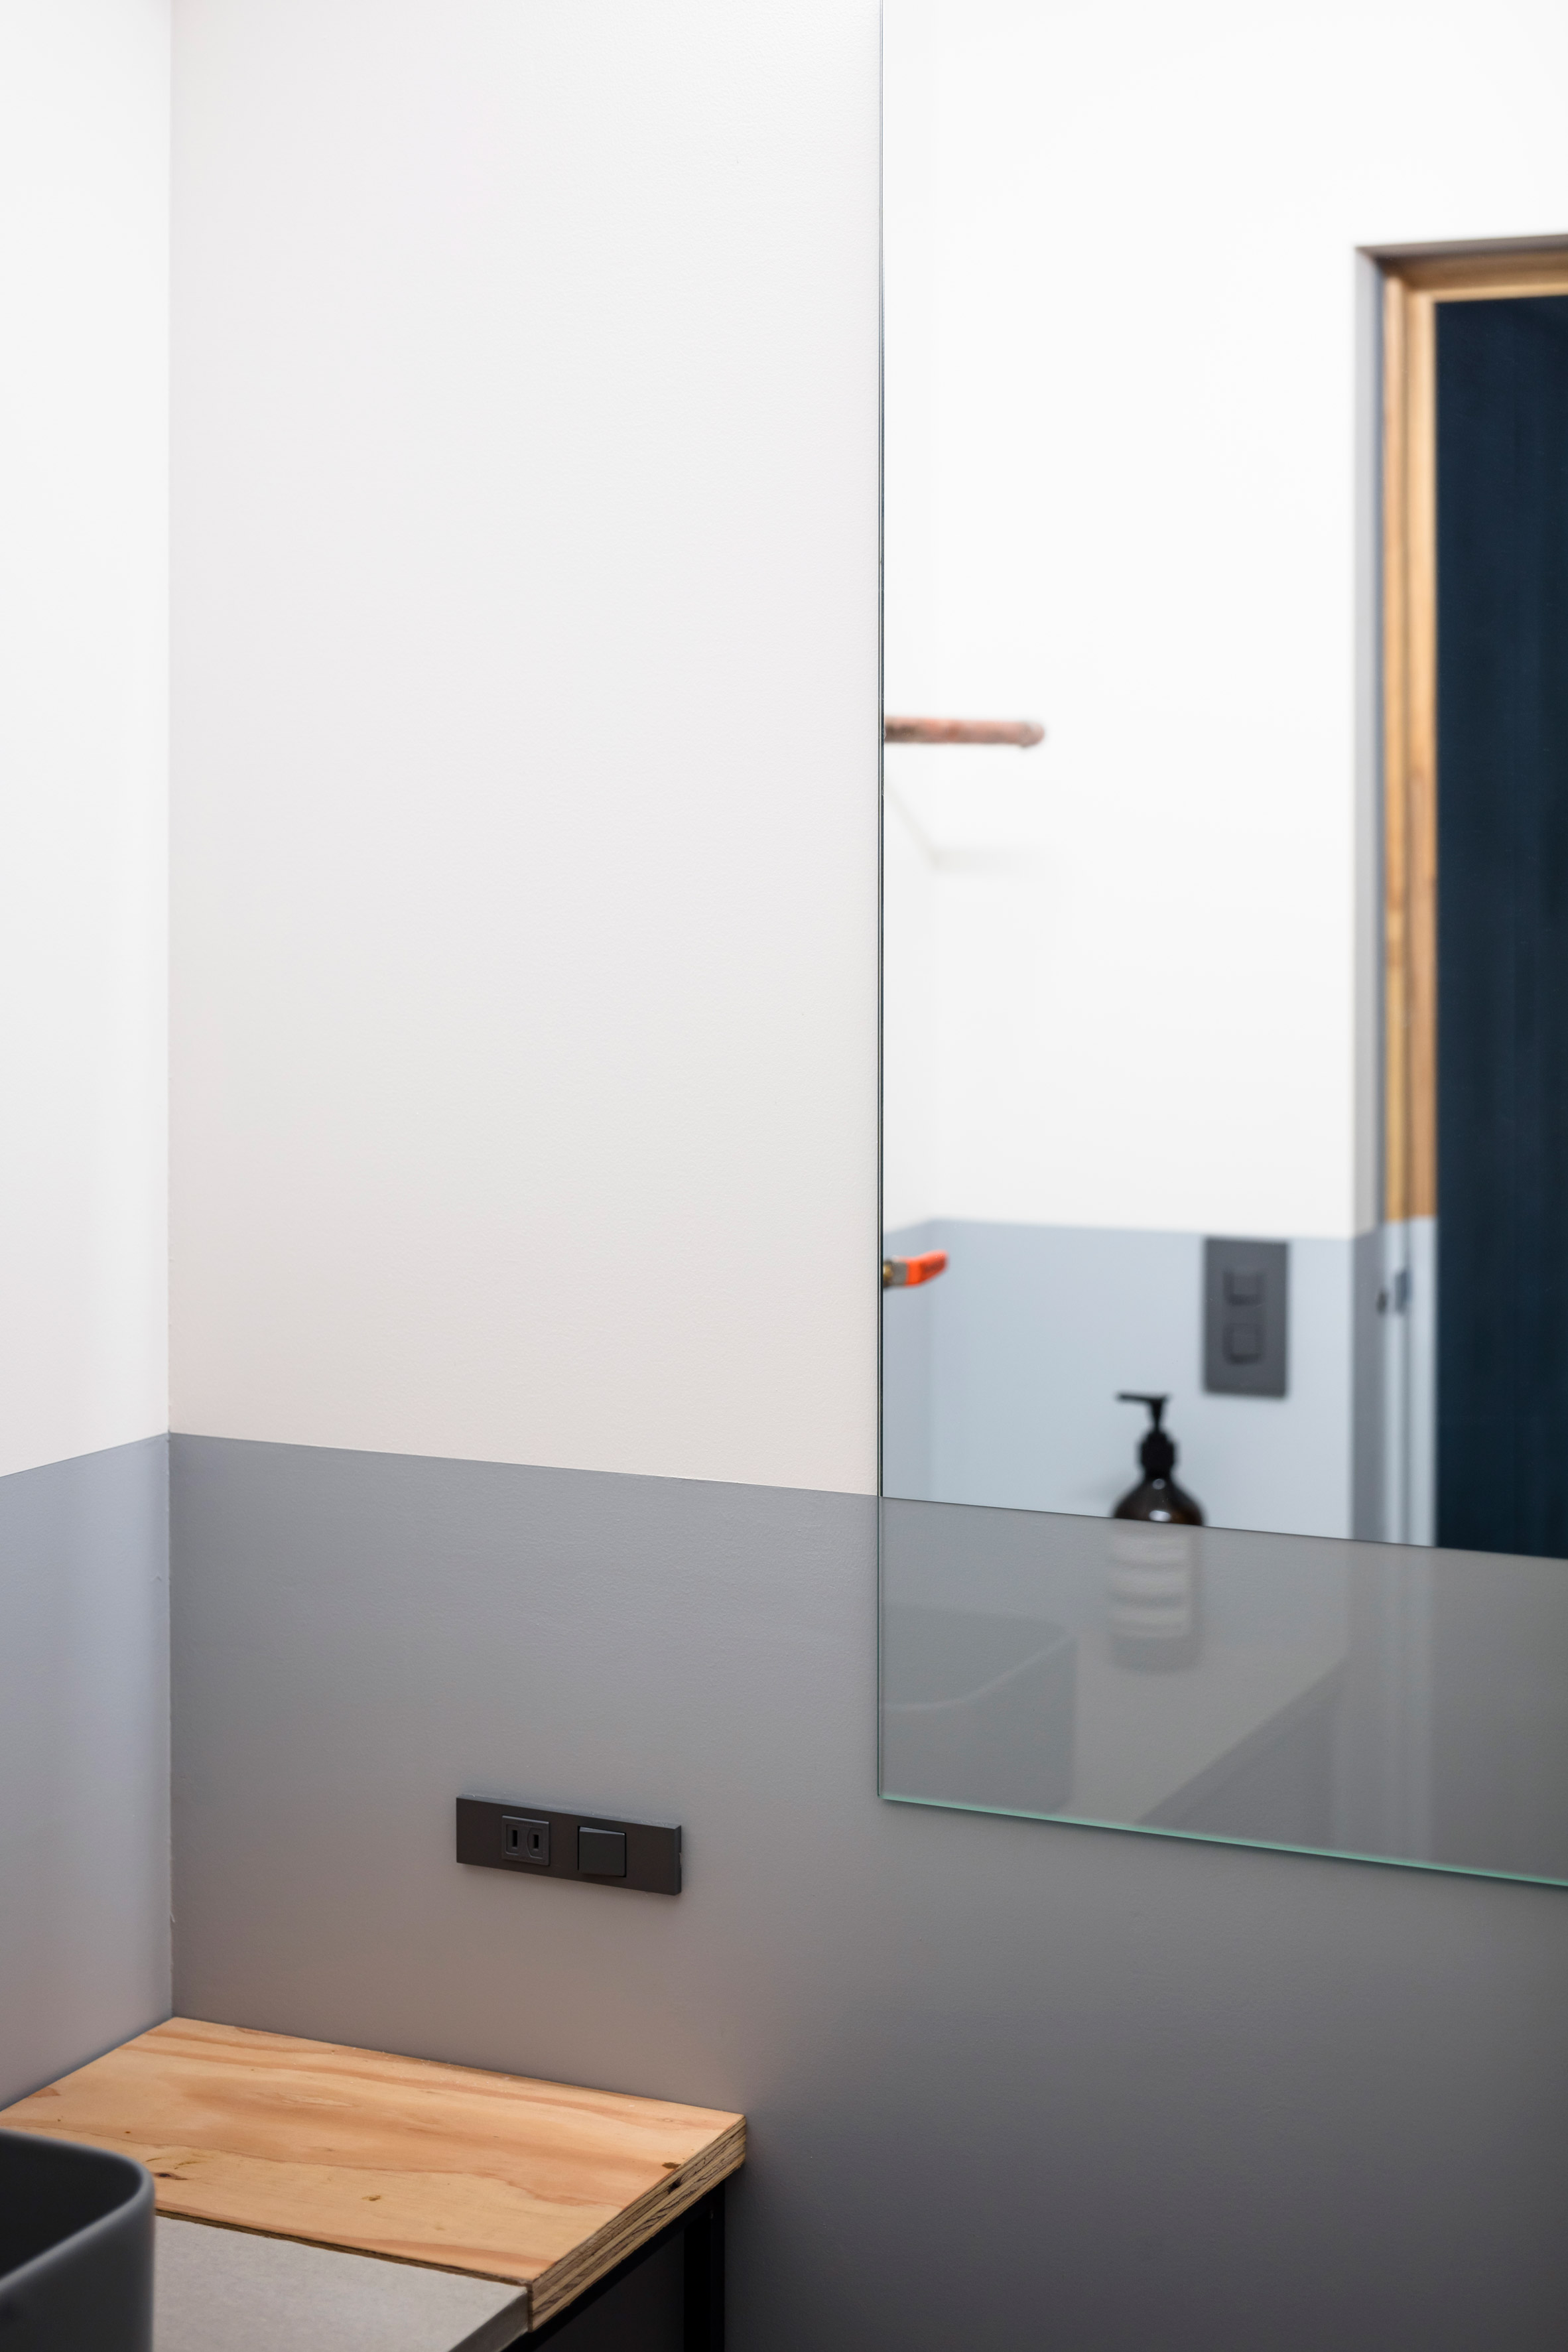 Bathroom in Panda minimal office by Shimpei Oda Architect Office and Atelier Loowe